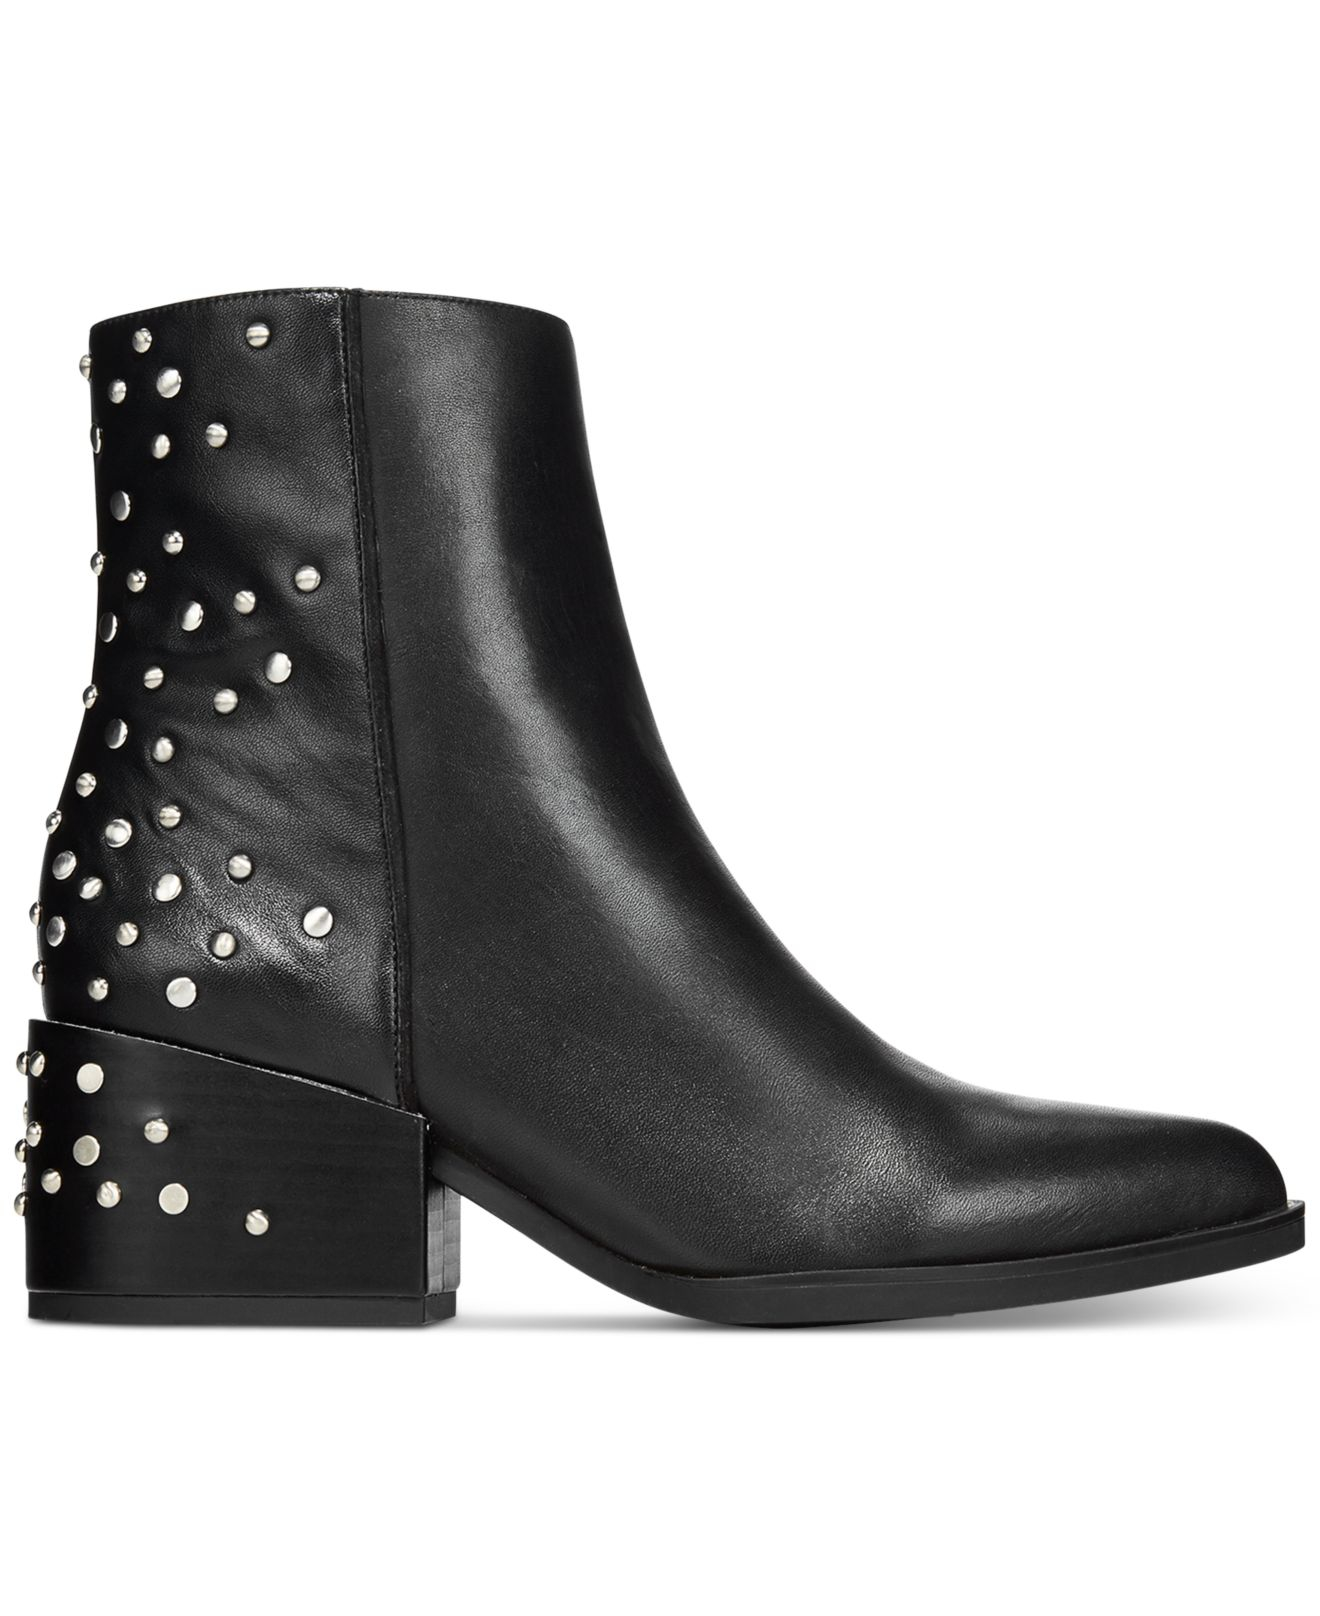 8faddf2b337a59 Lyst - Circus by Sam Edelman Rae Studded Booties in Black